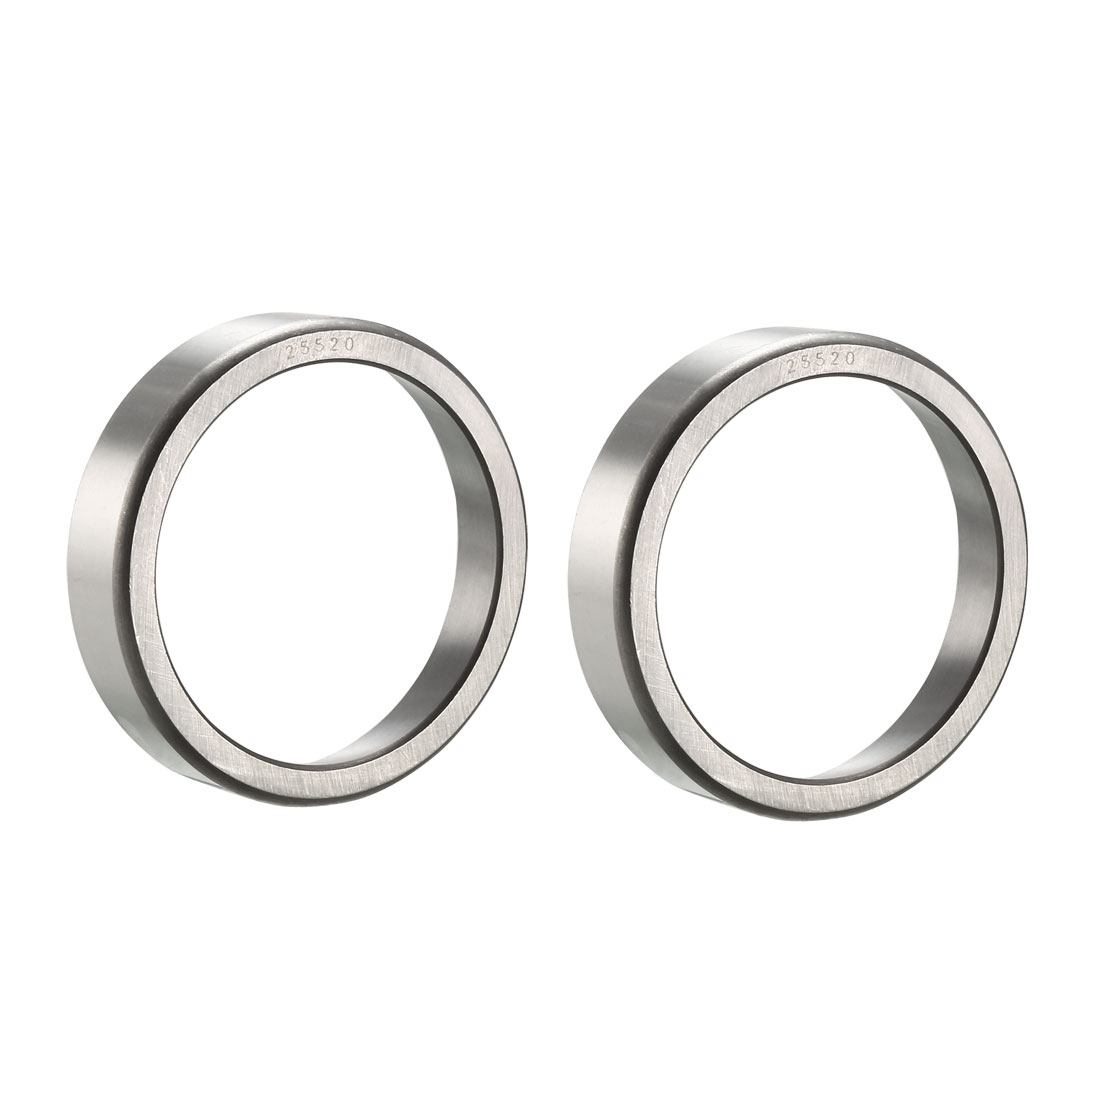 "25520 Tapered Roller Bearing Outer Race Cup 3.265"" O.D., 0.75"" Width 2pcs"